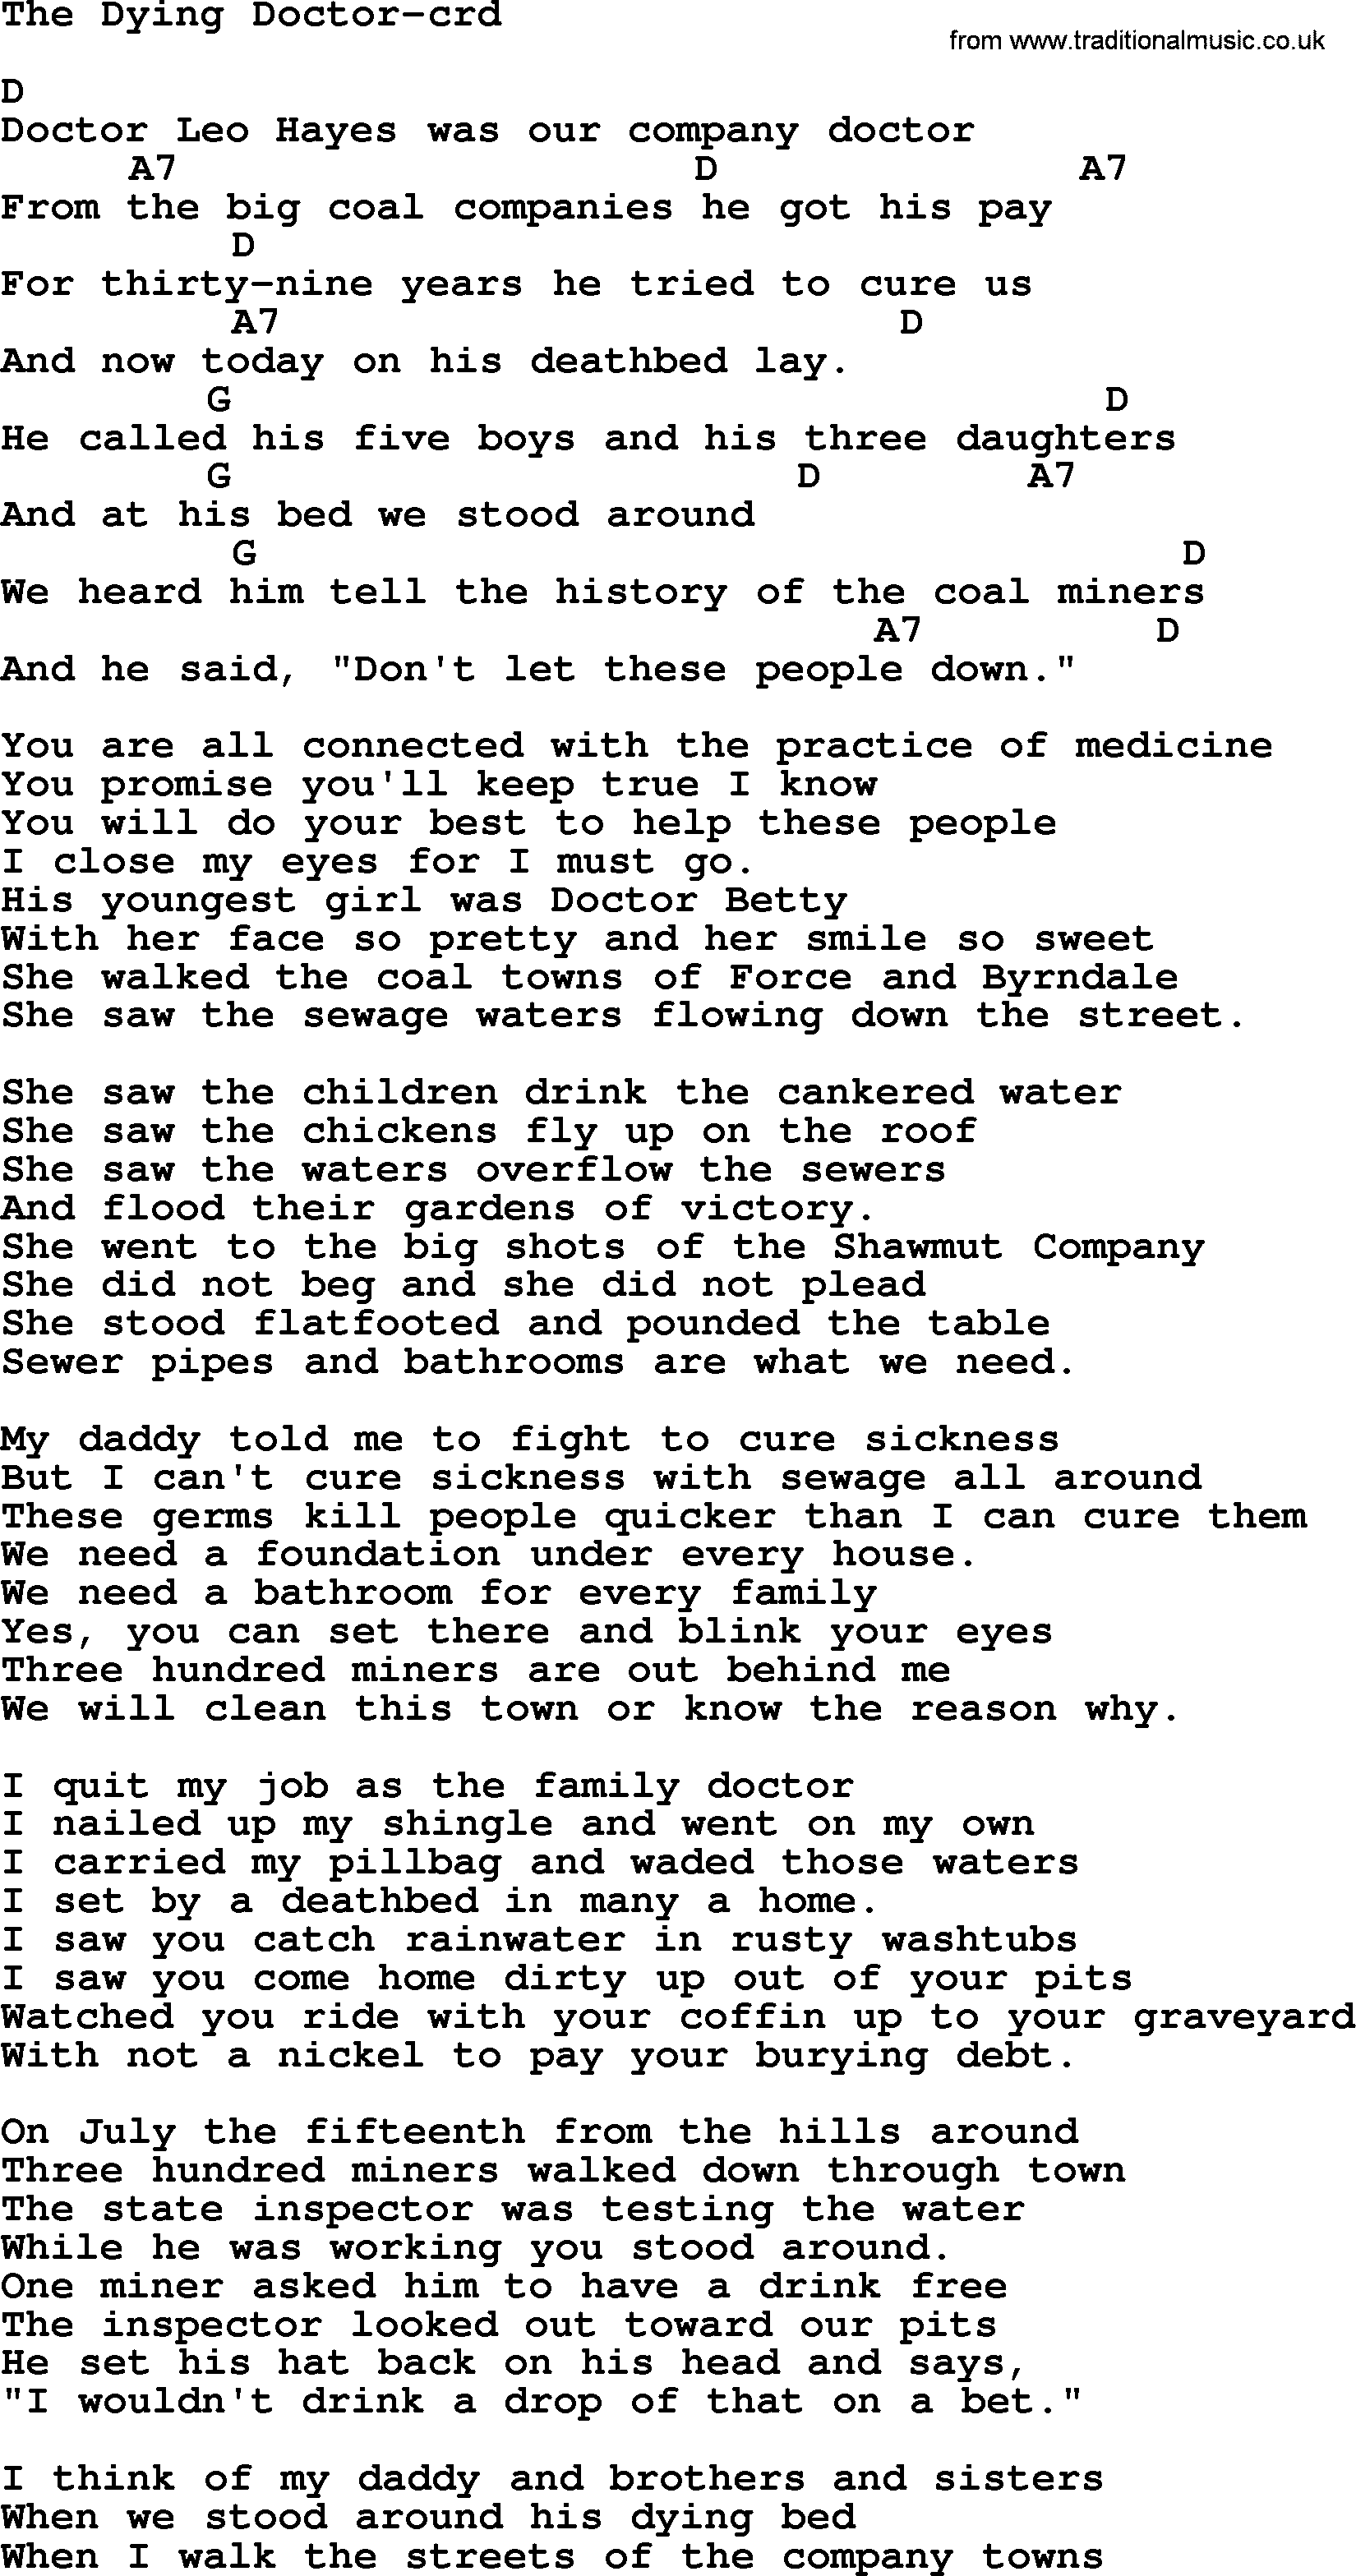 Woody Guthrie Song The Dying Doctor Lyrics And Chords